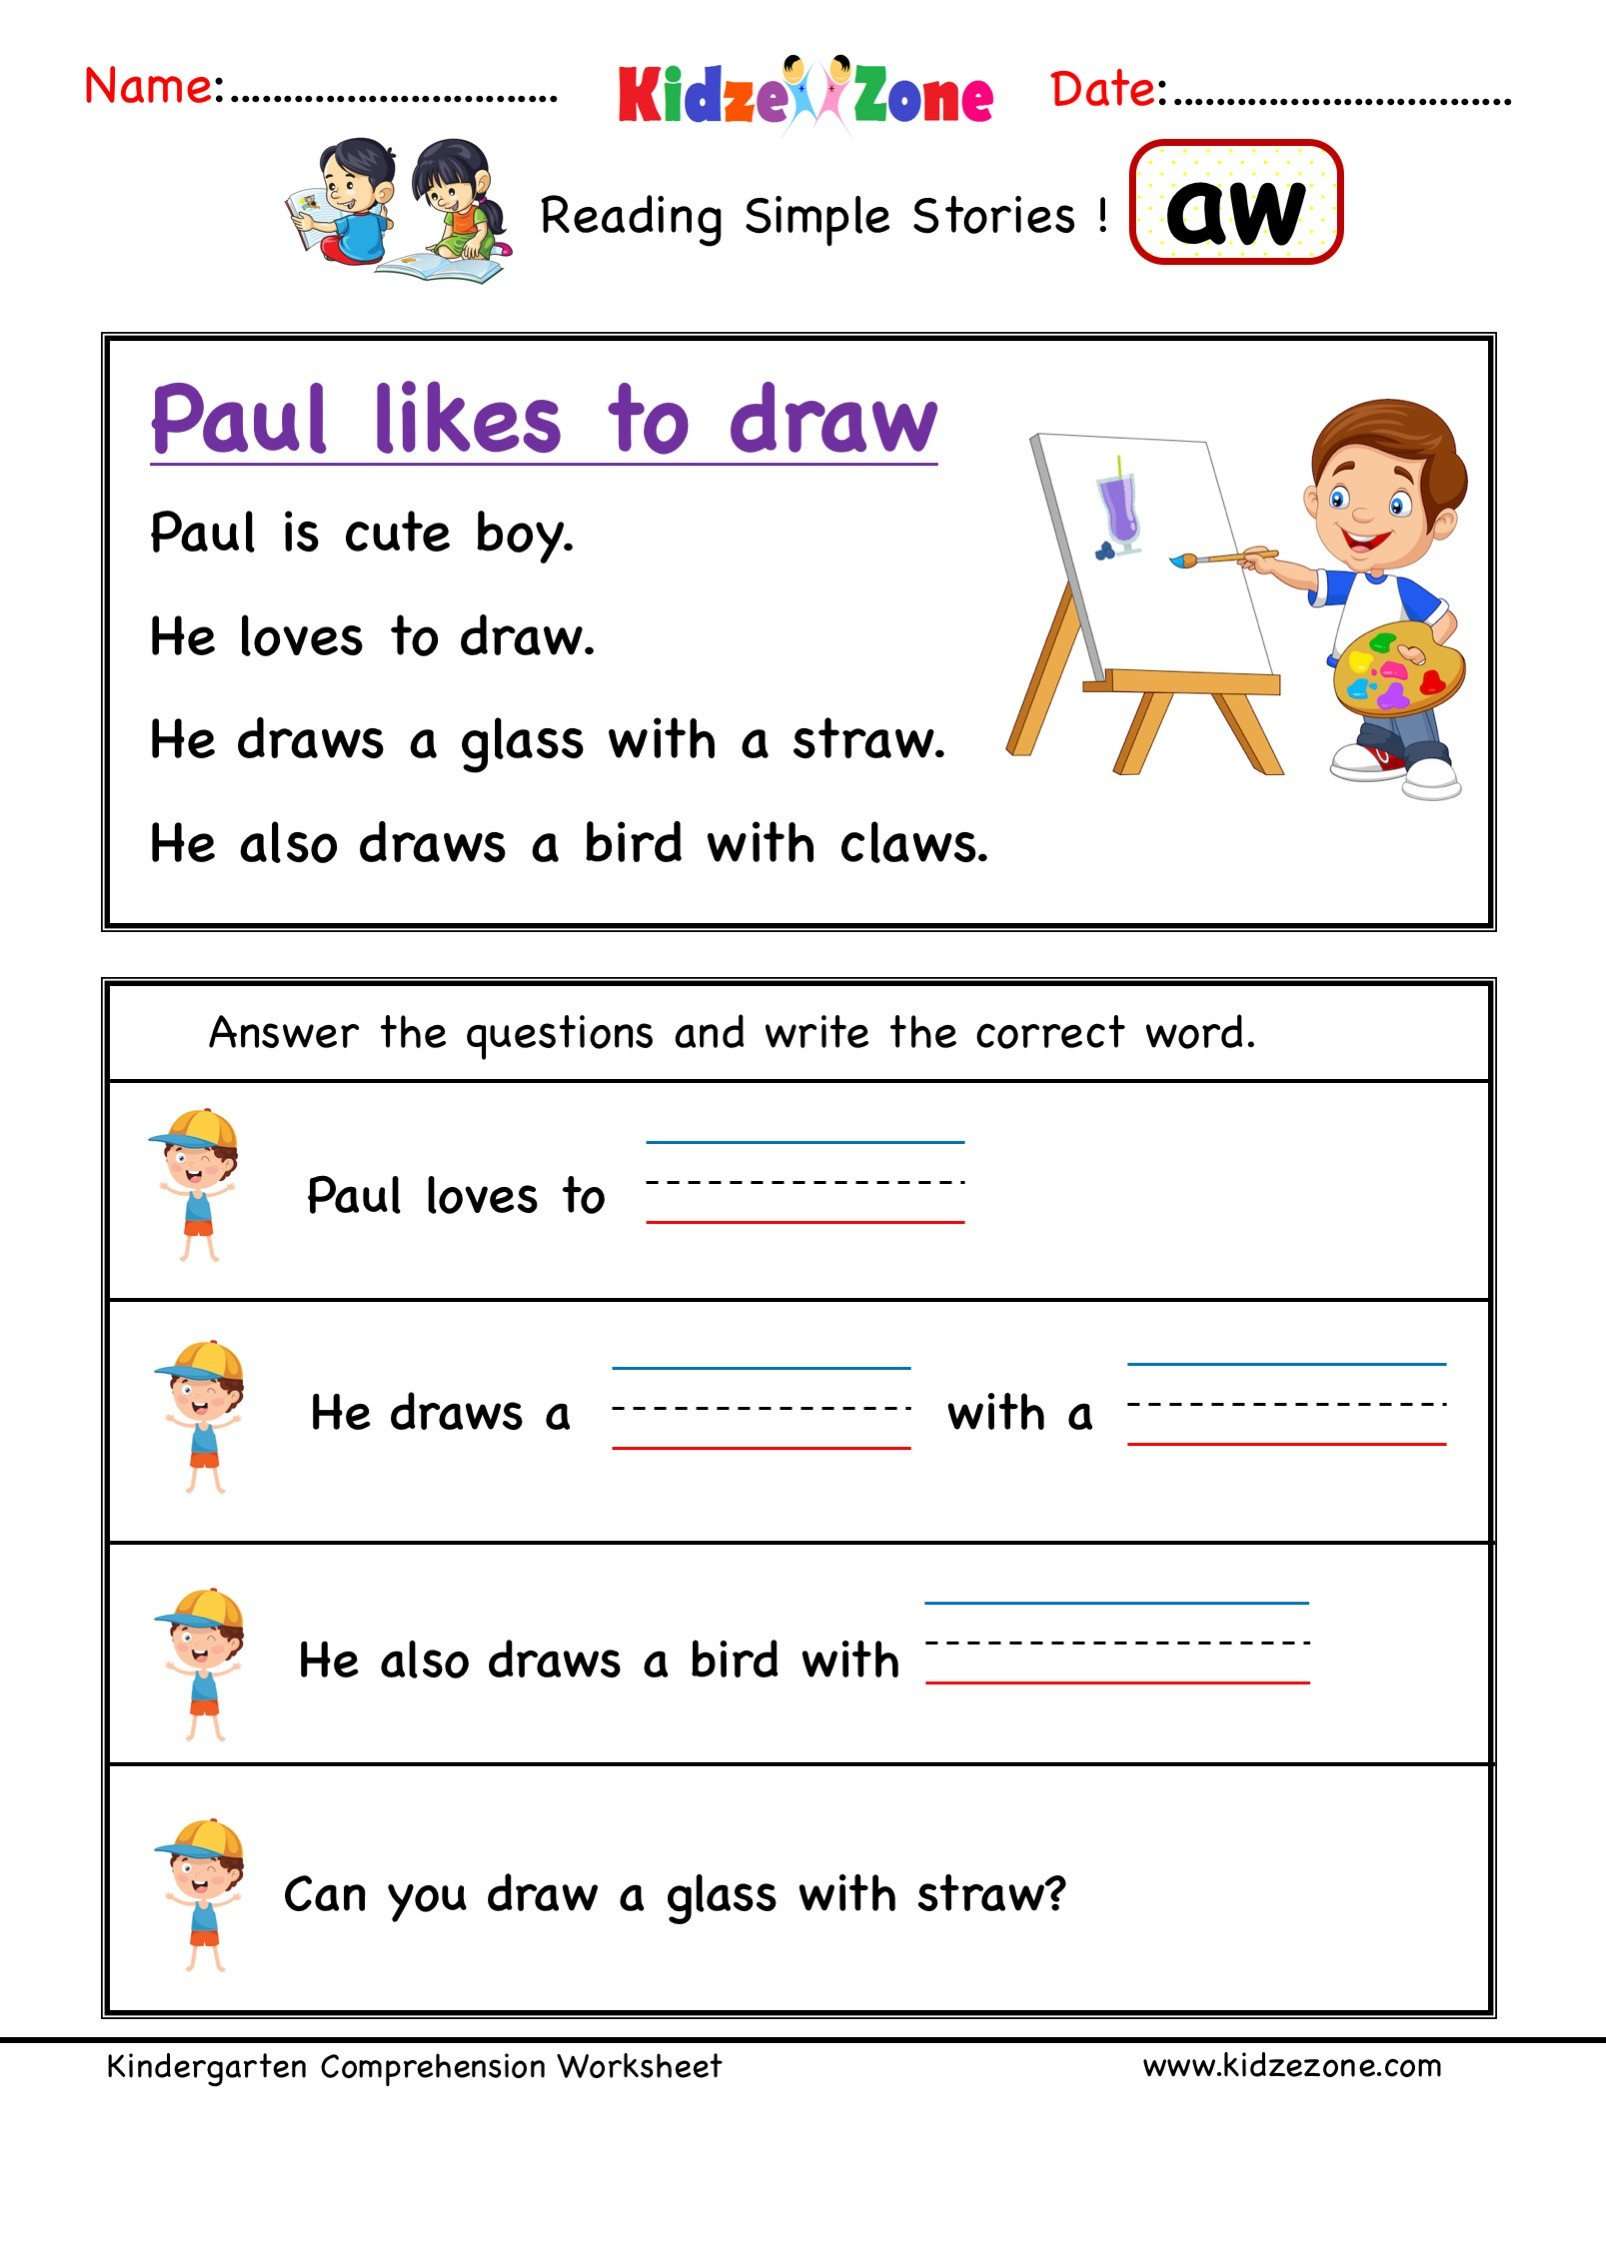 Rhyming Words Kindergarten Worksheets Kindergarten Worksheets Aw Word Family Prehension 3